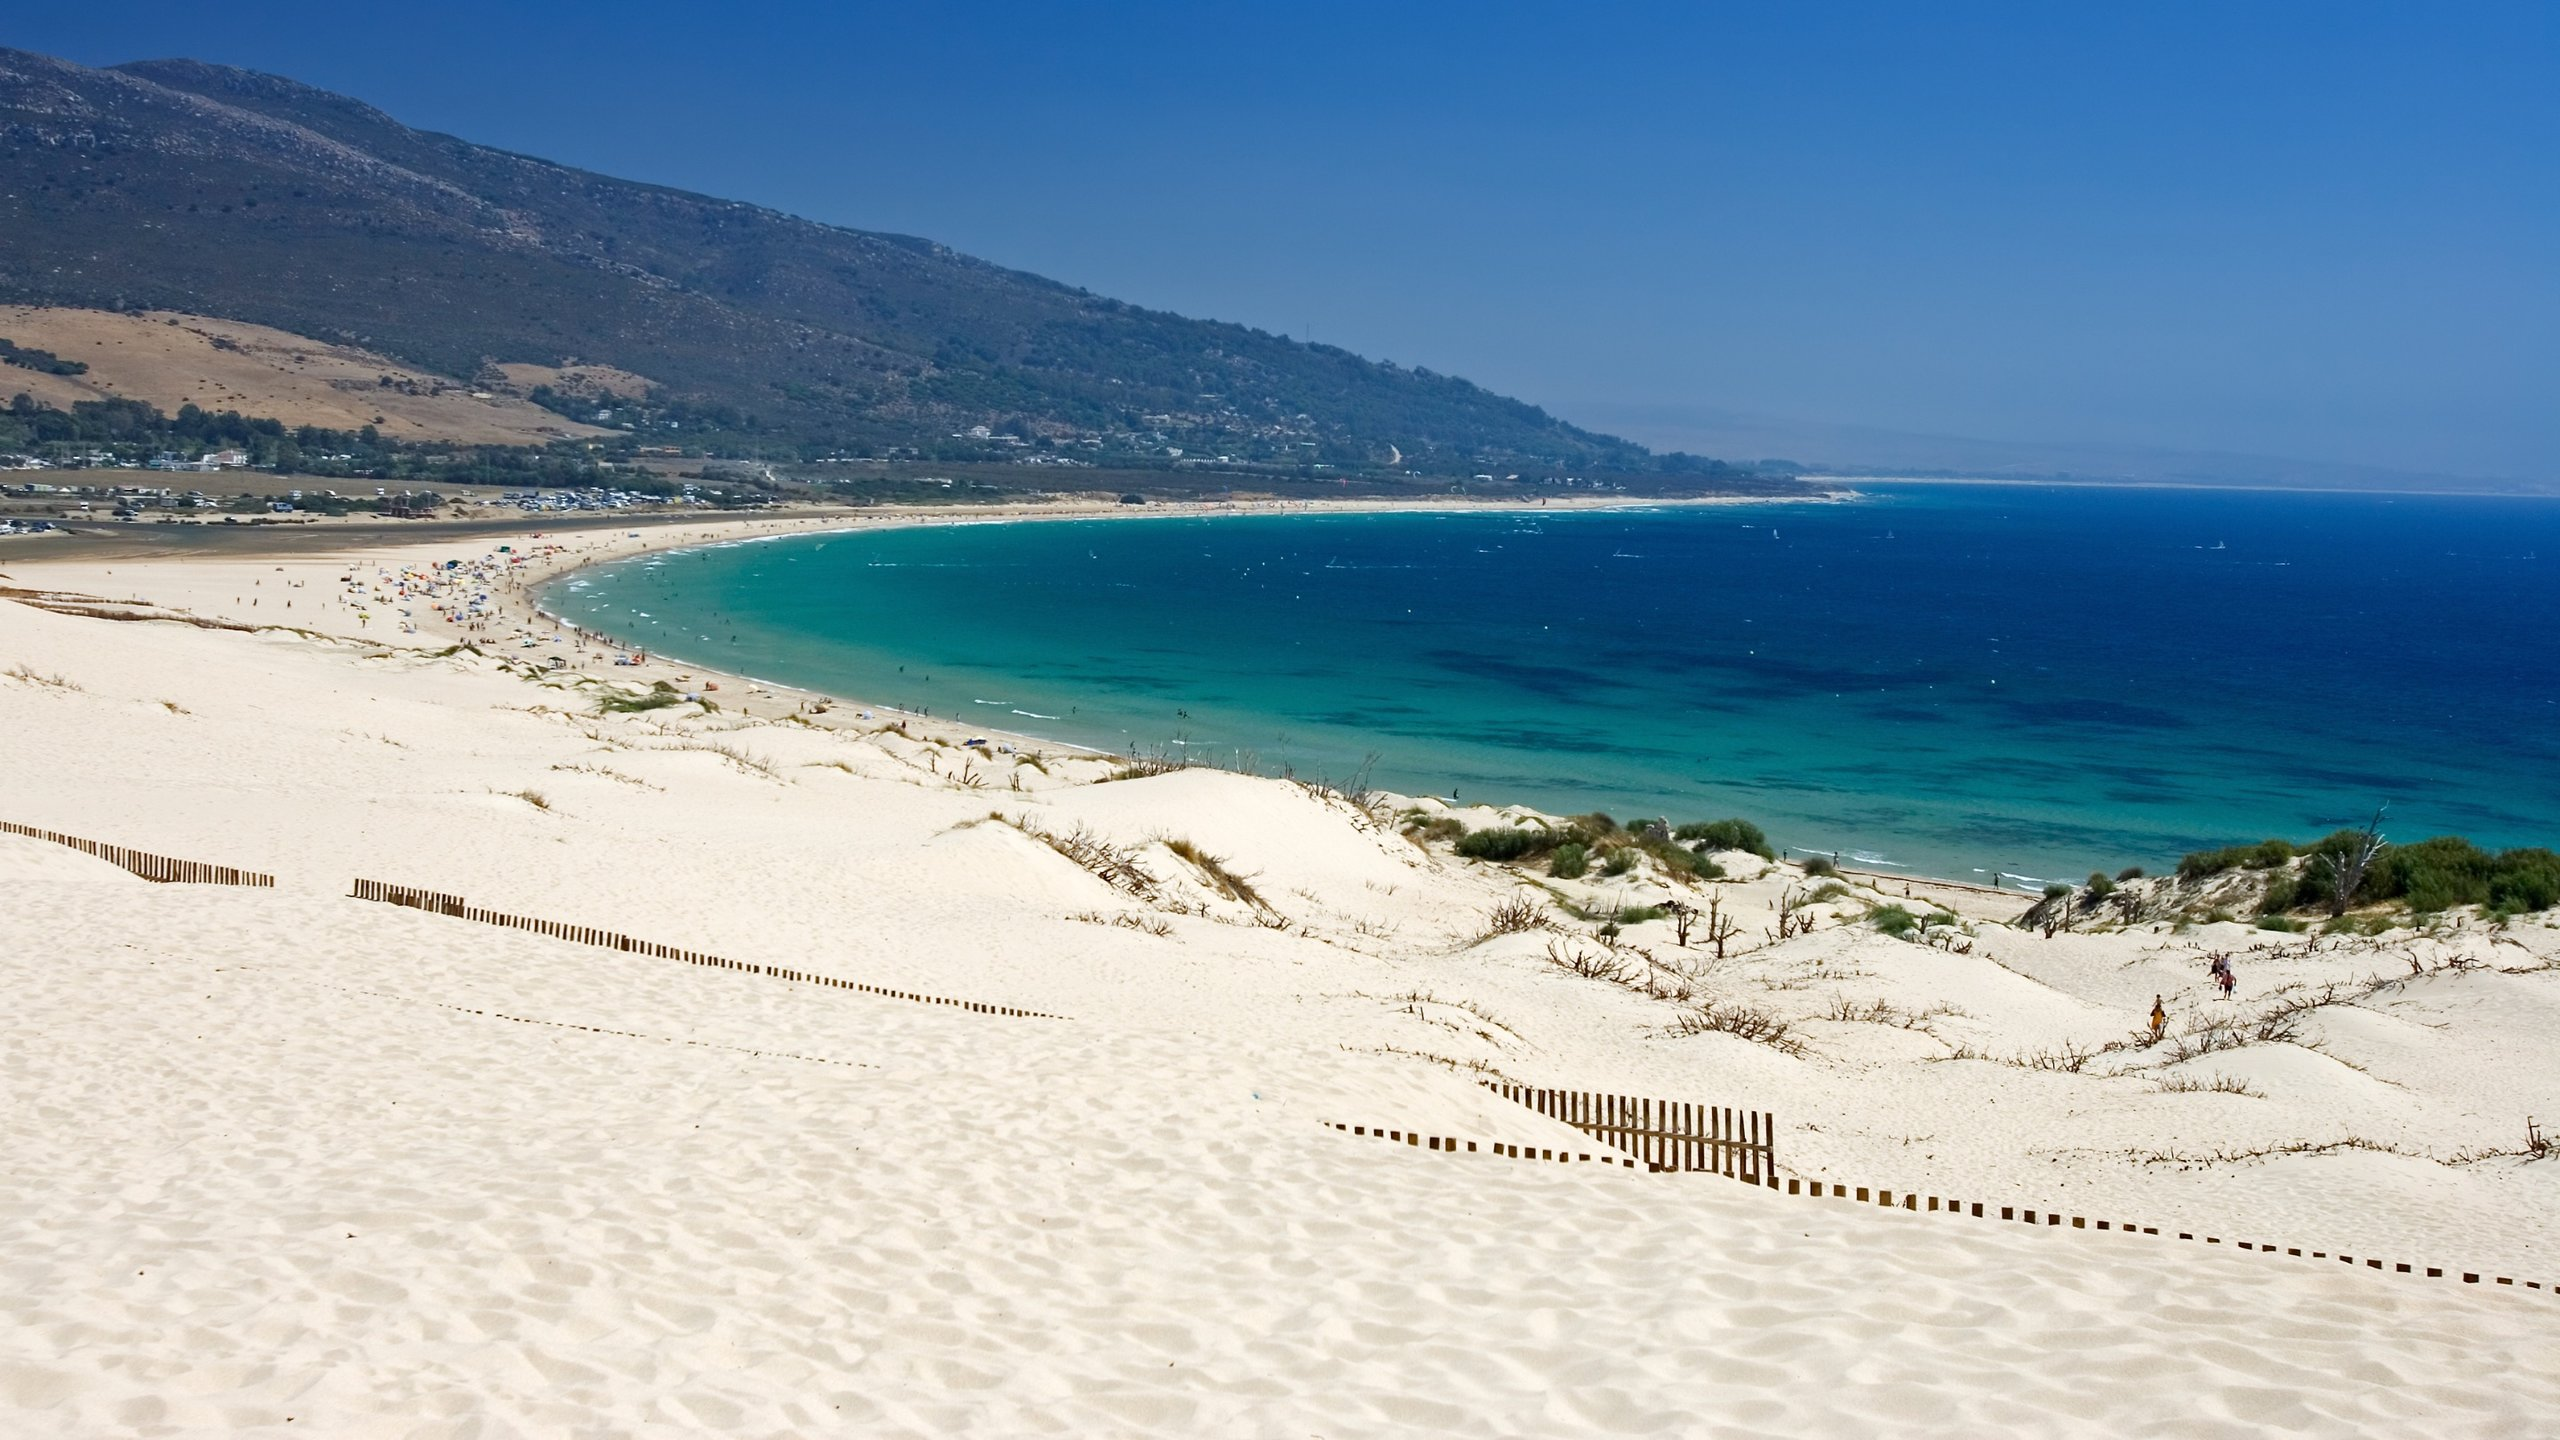 Tarifa, the beach